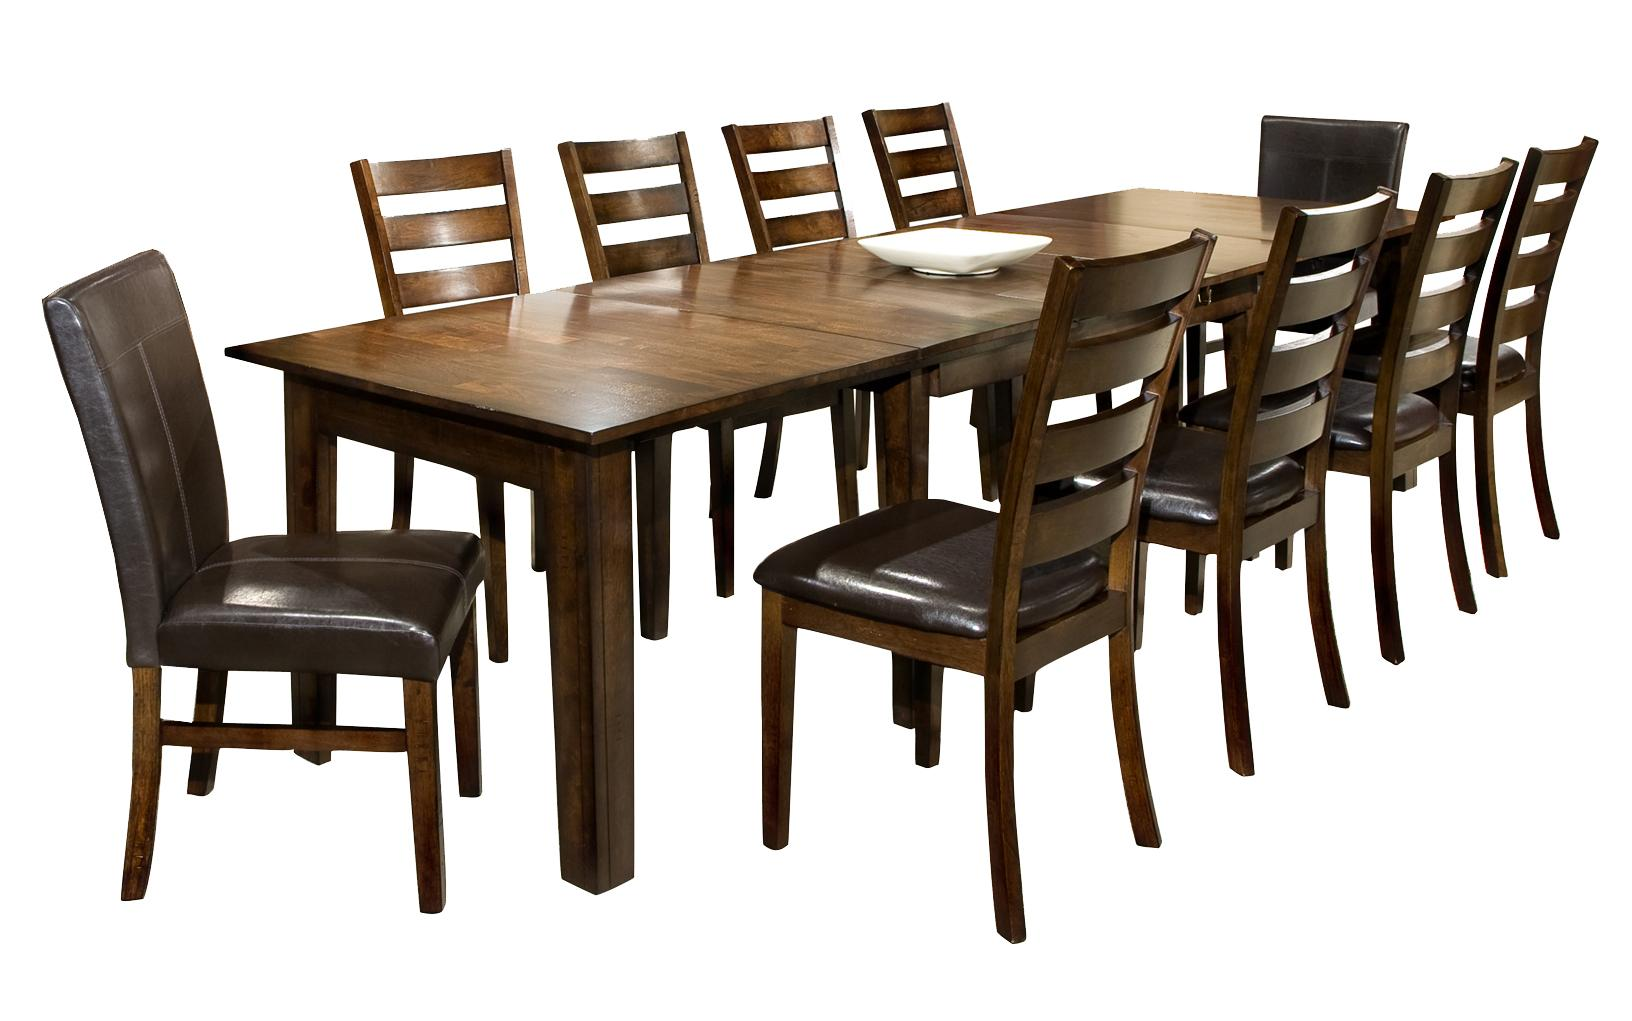 Black Dining Room Table And Chairs Kona 11 Piece Dining Set With Table And Chairs By Intercon At Wayside Furniture